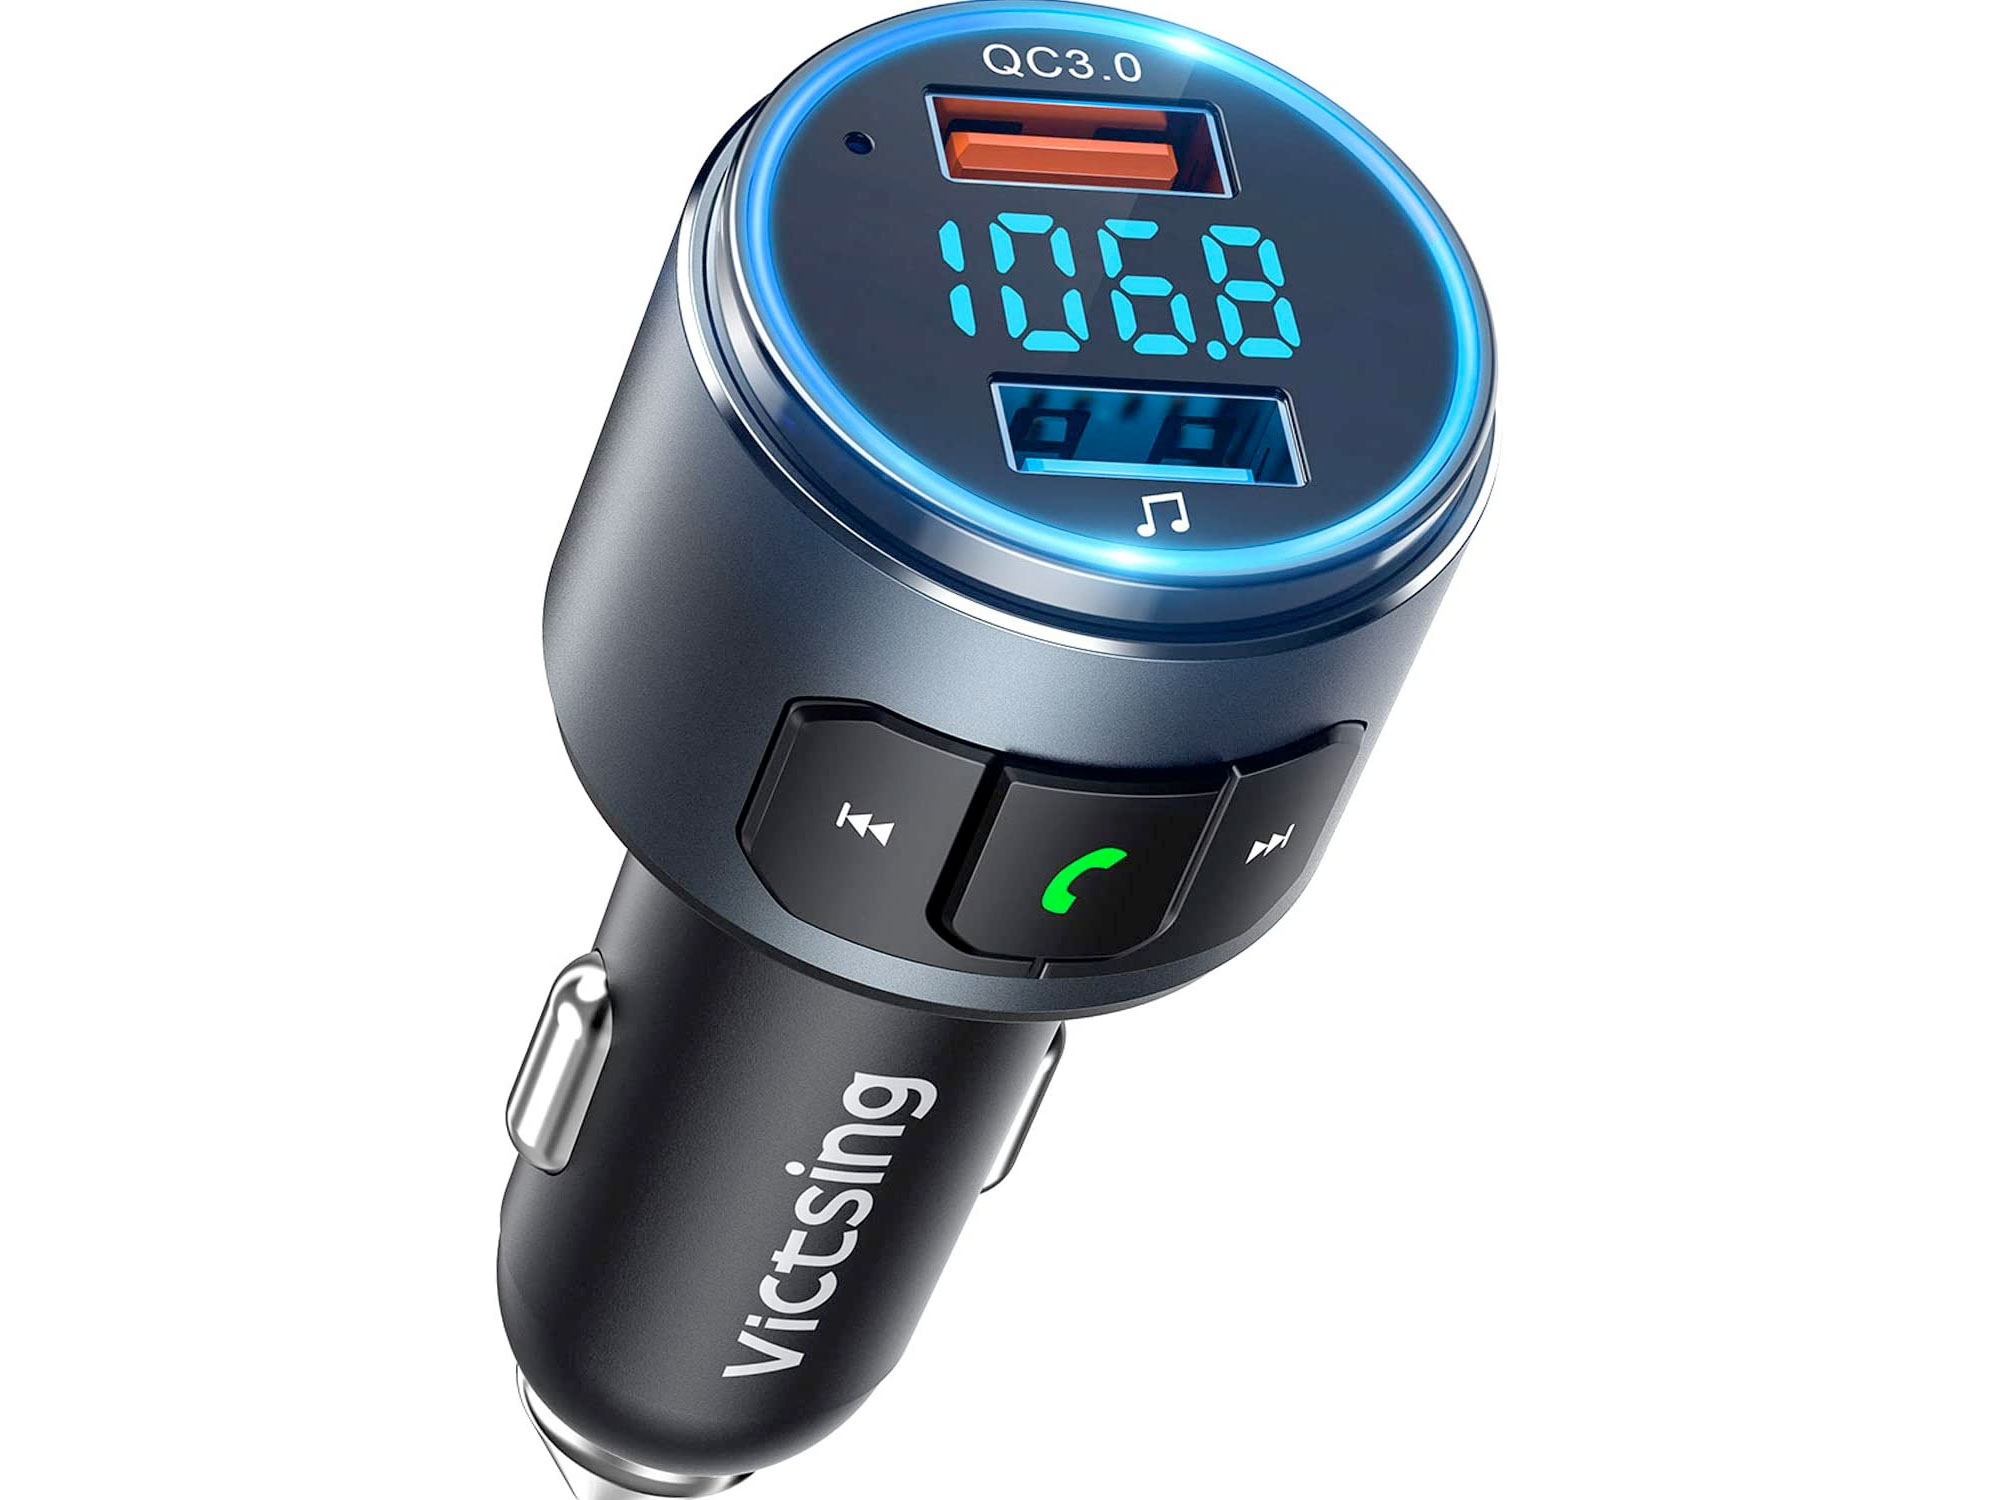 Amazon:VicTsing藍牙接收FM播放器(FM Transmitter for Bluetooth/USB)只賣$18.60